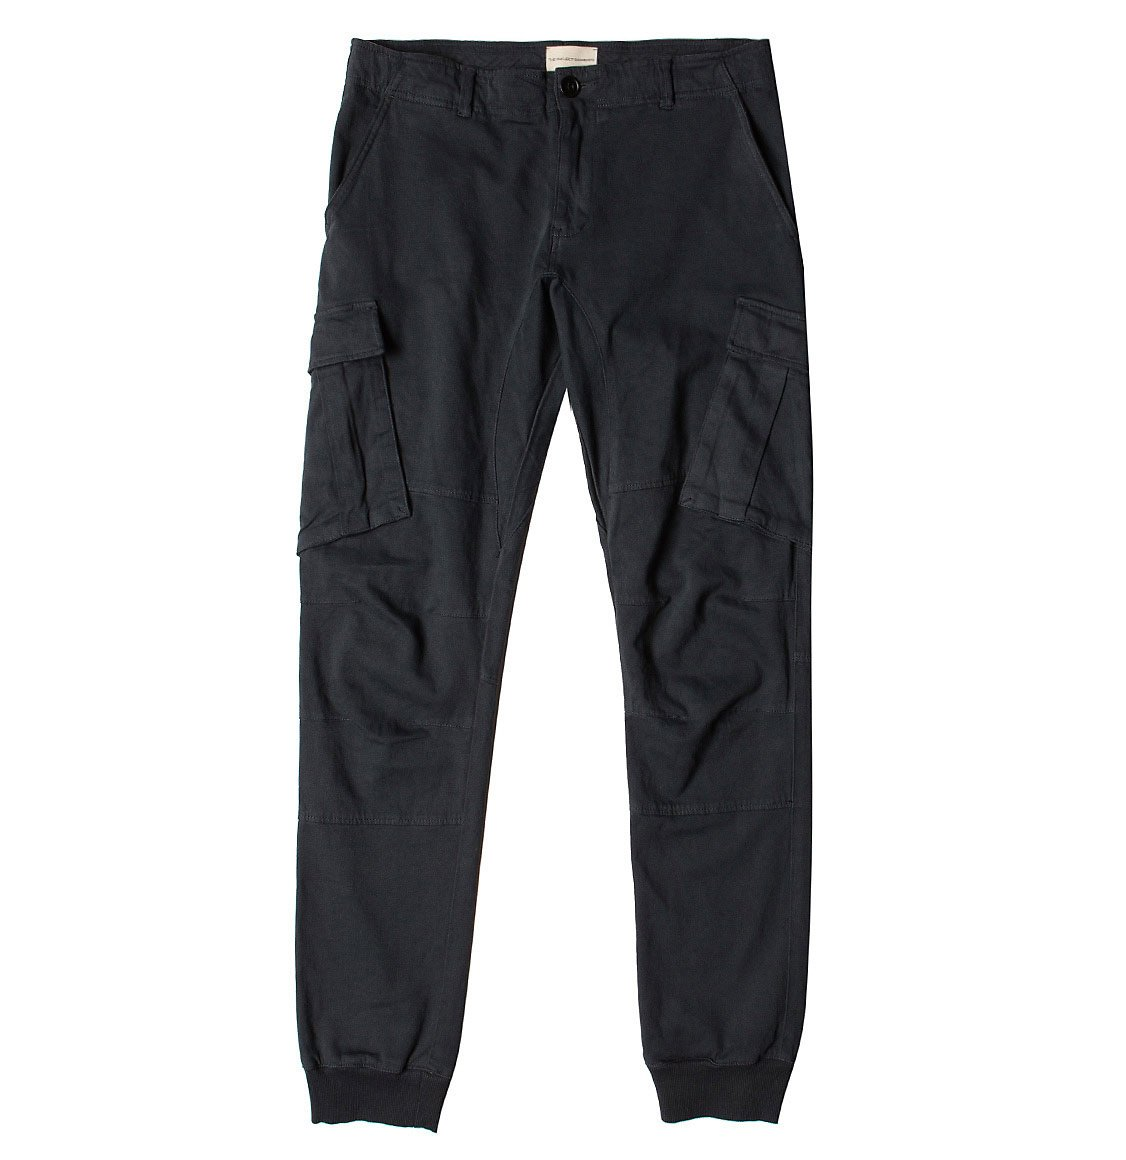 The Project Garments Cargo Cotton Light Weight Pants Meteorite